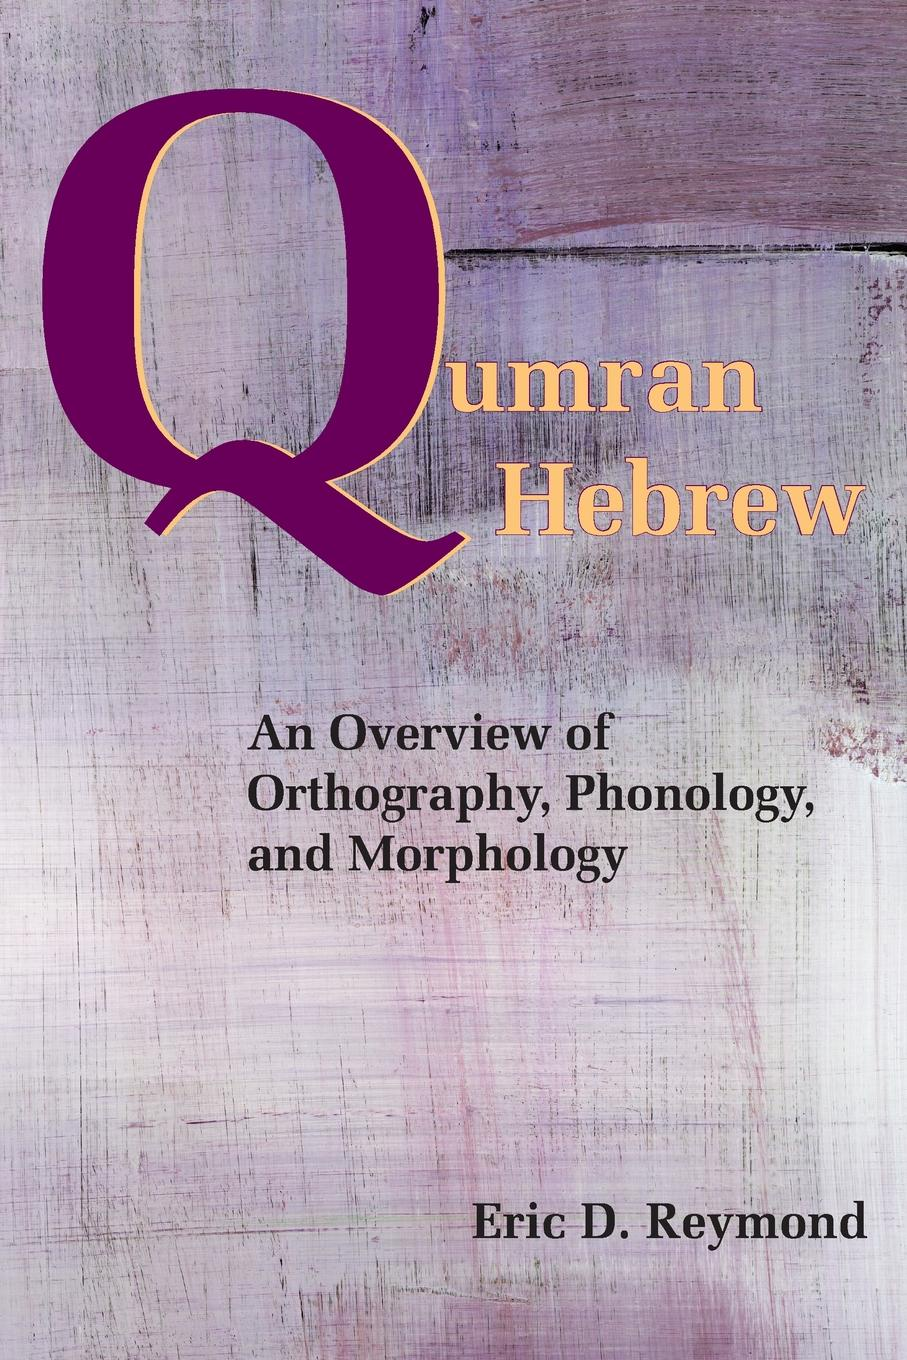 Eric D. Reymond Qumran Hebrew. An Overview of Orthography, Phonology, and Morphology mehmet yavas applied english phonology